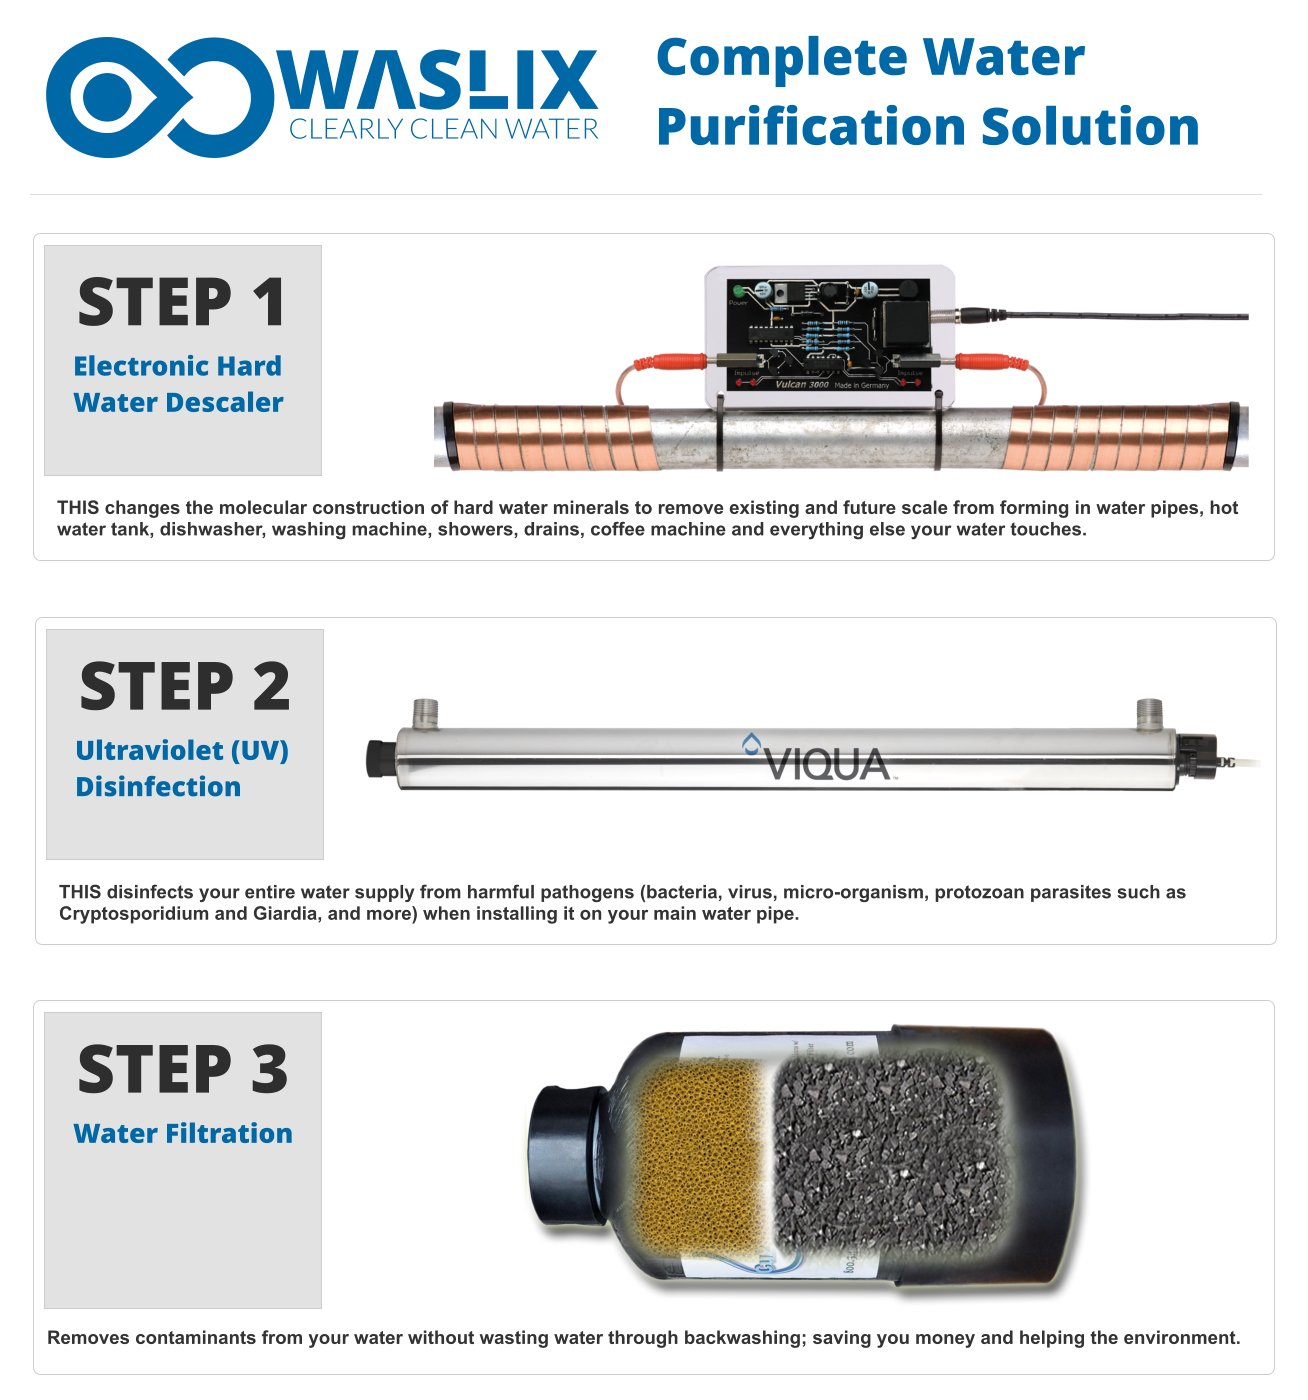 Waslix- Clearly Clean Water Purification Solution for Apartments and ...